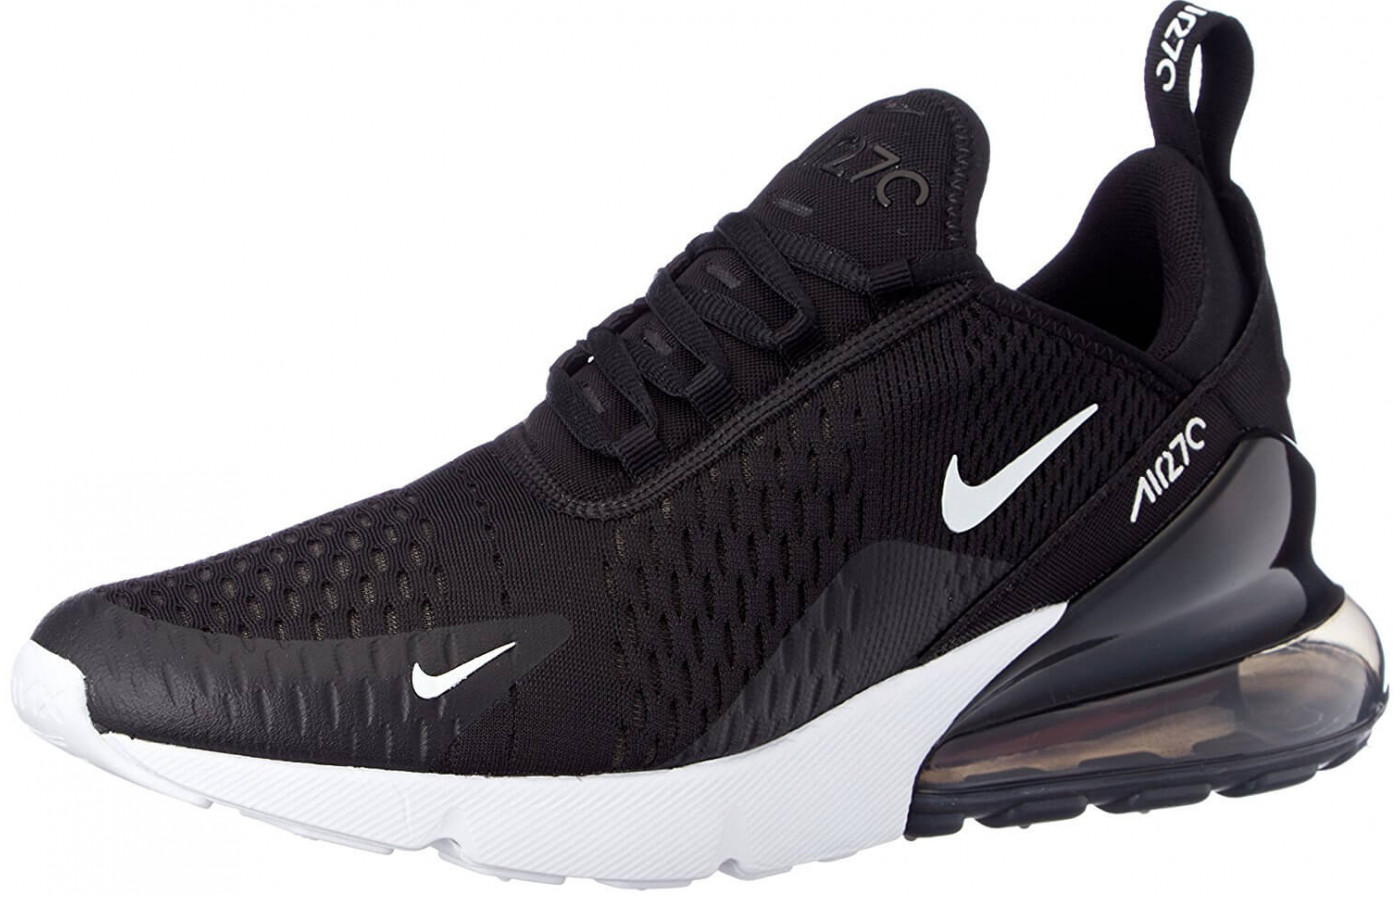 ea6f832b317 Nike Air Max 270. Mesh upper and 270 degrees of Air ...